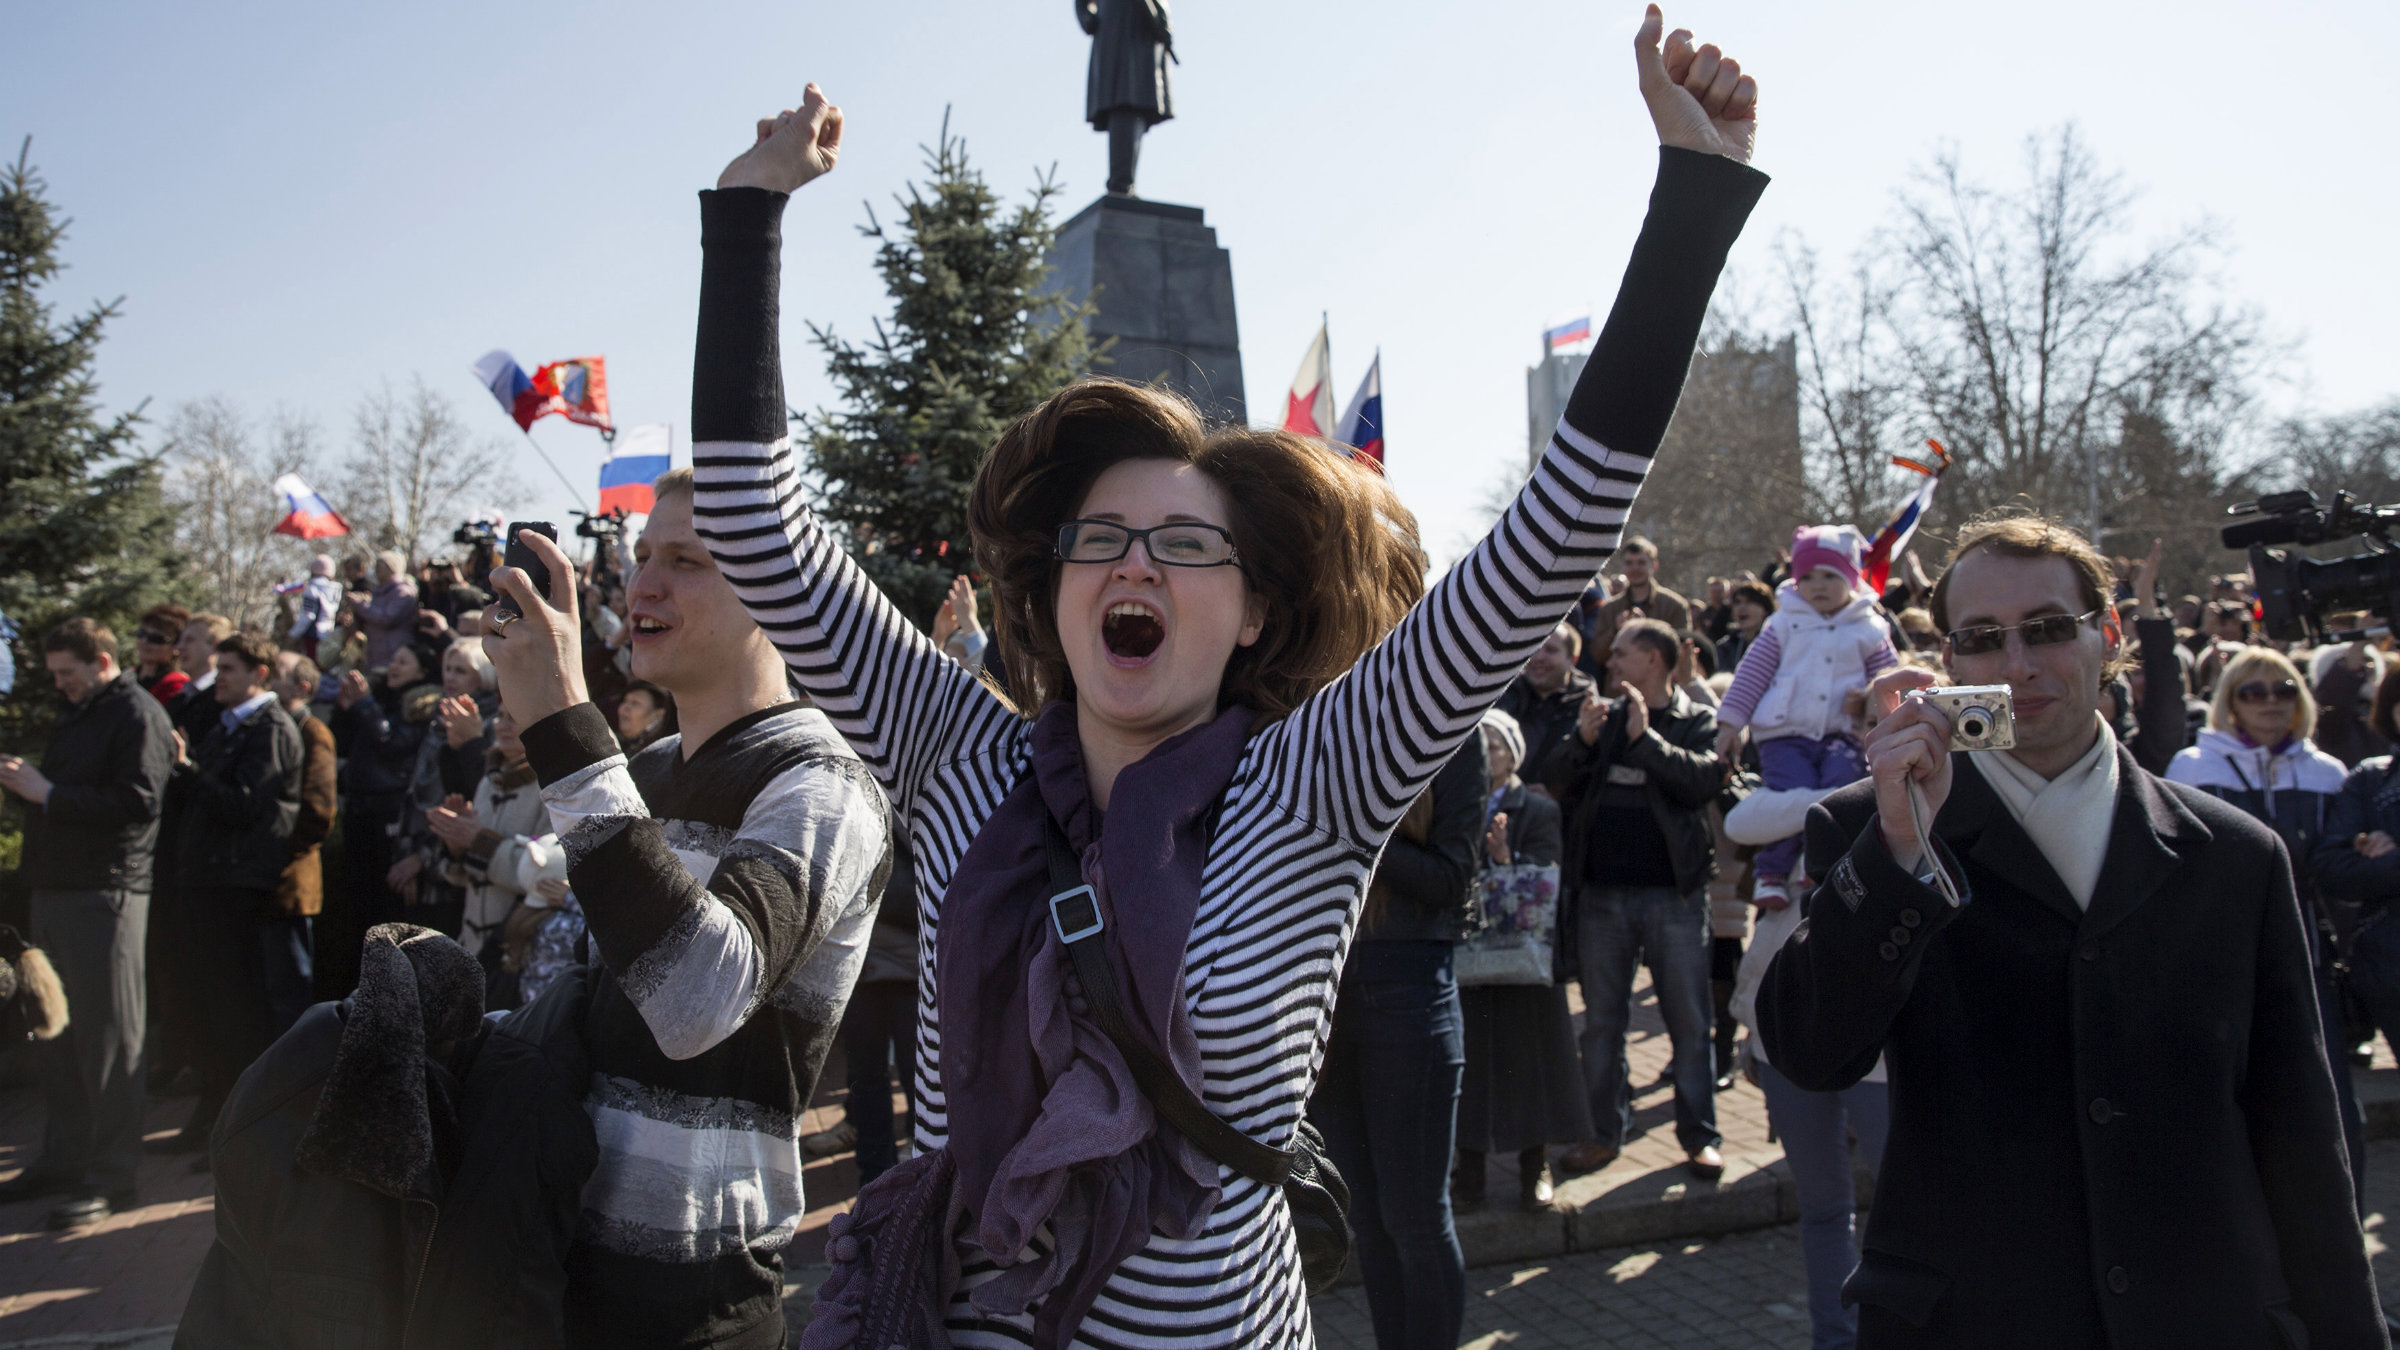 Russians aren't lamenting the end of the old world order.